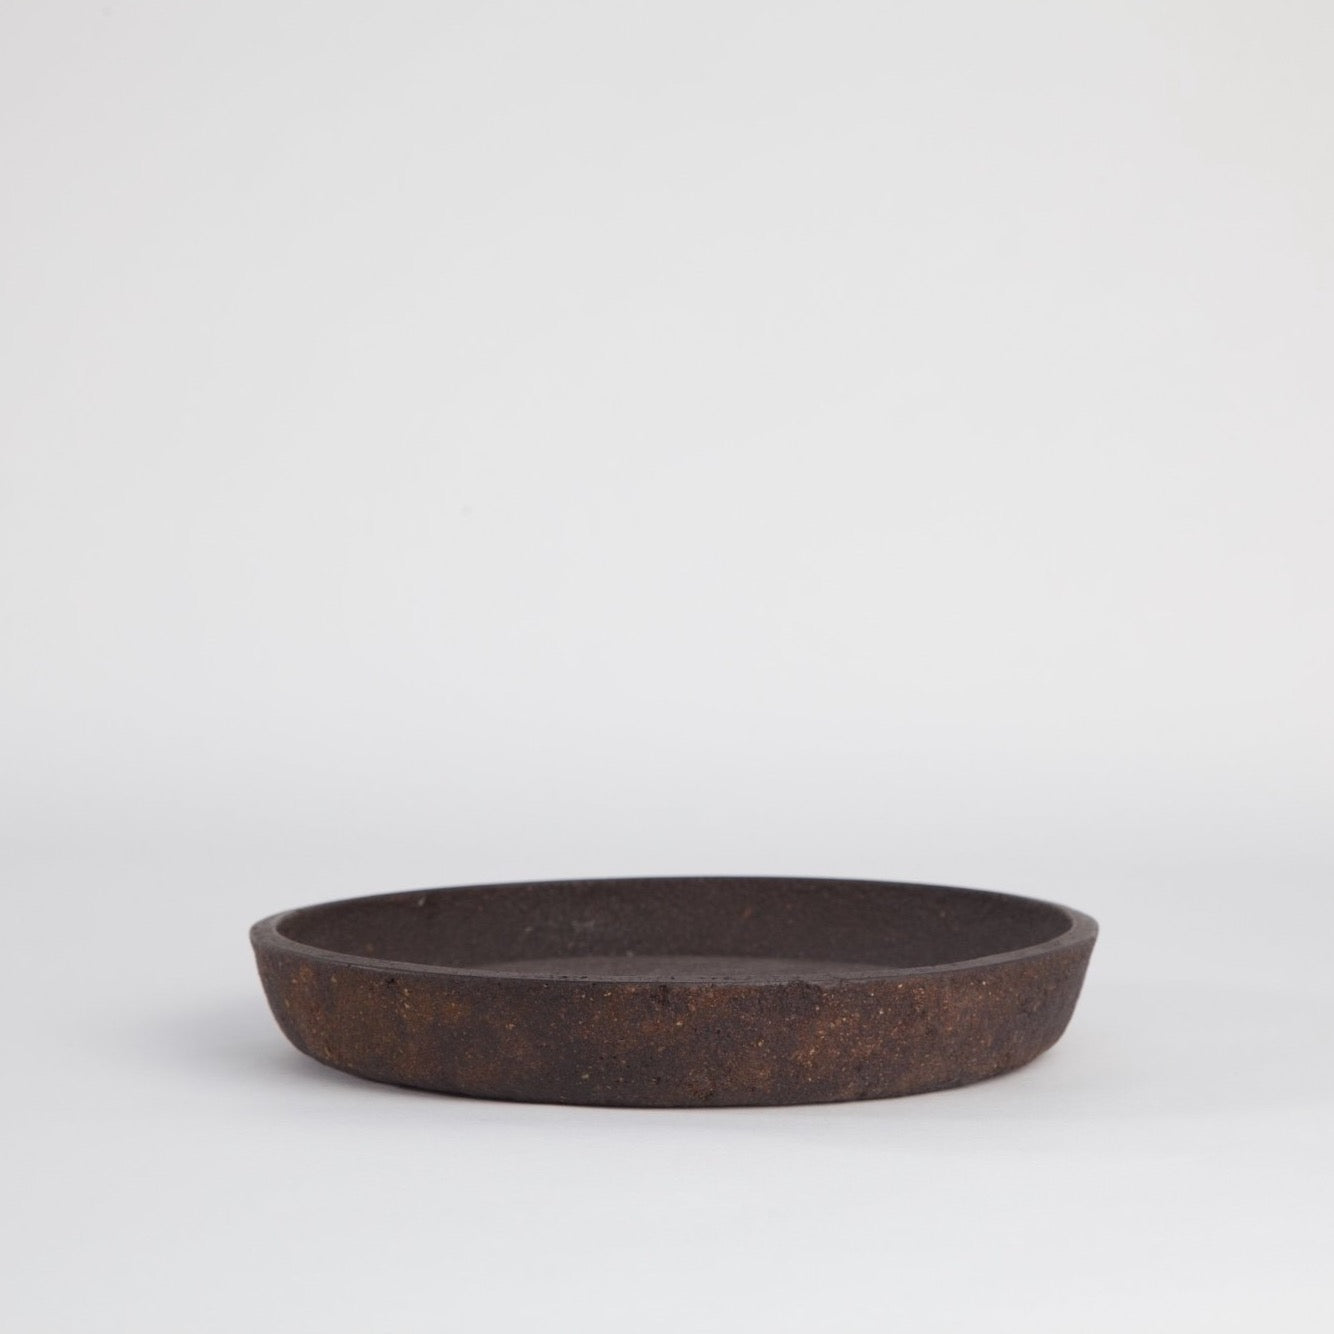 Tray | Tree bark tableware - THE HOME OF SUSTAINABLE THINGS